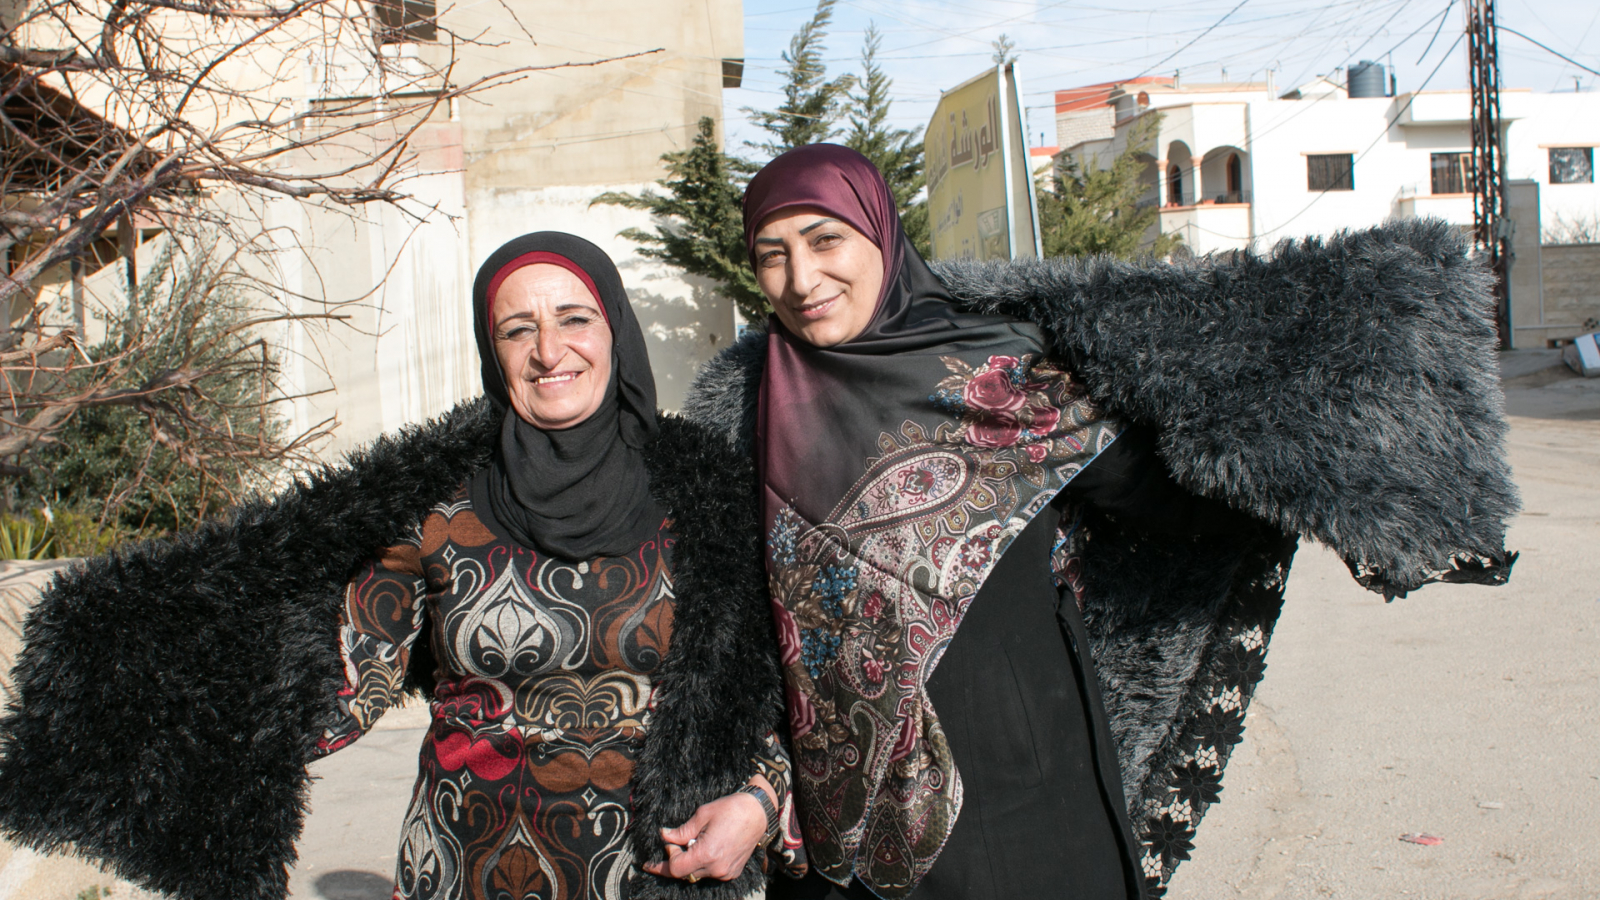 Souhayla and her neighbour both beneficiaries of the EU-funded Dawric project, pose with their creations